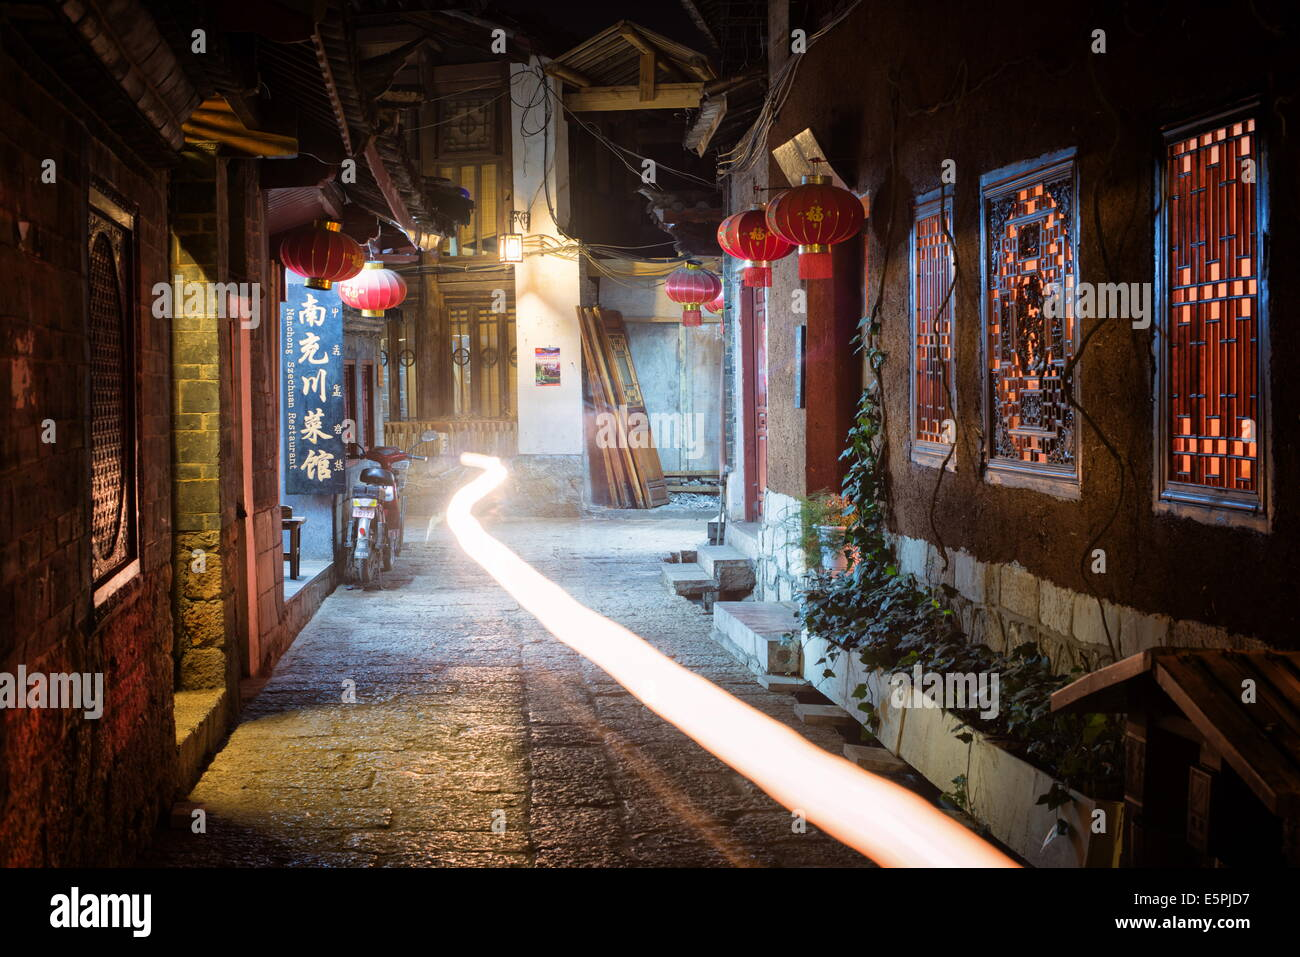 Light trail in an alley at night in Lijiang Old Town, UNESCO World Heritage Site, Lijiang, Yunnan, China, Asia - Stock Image